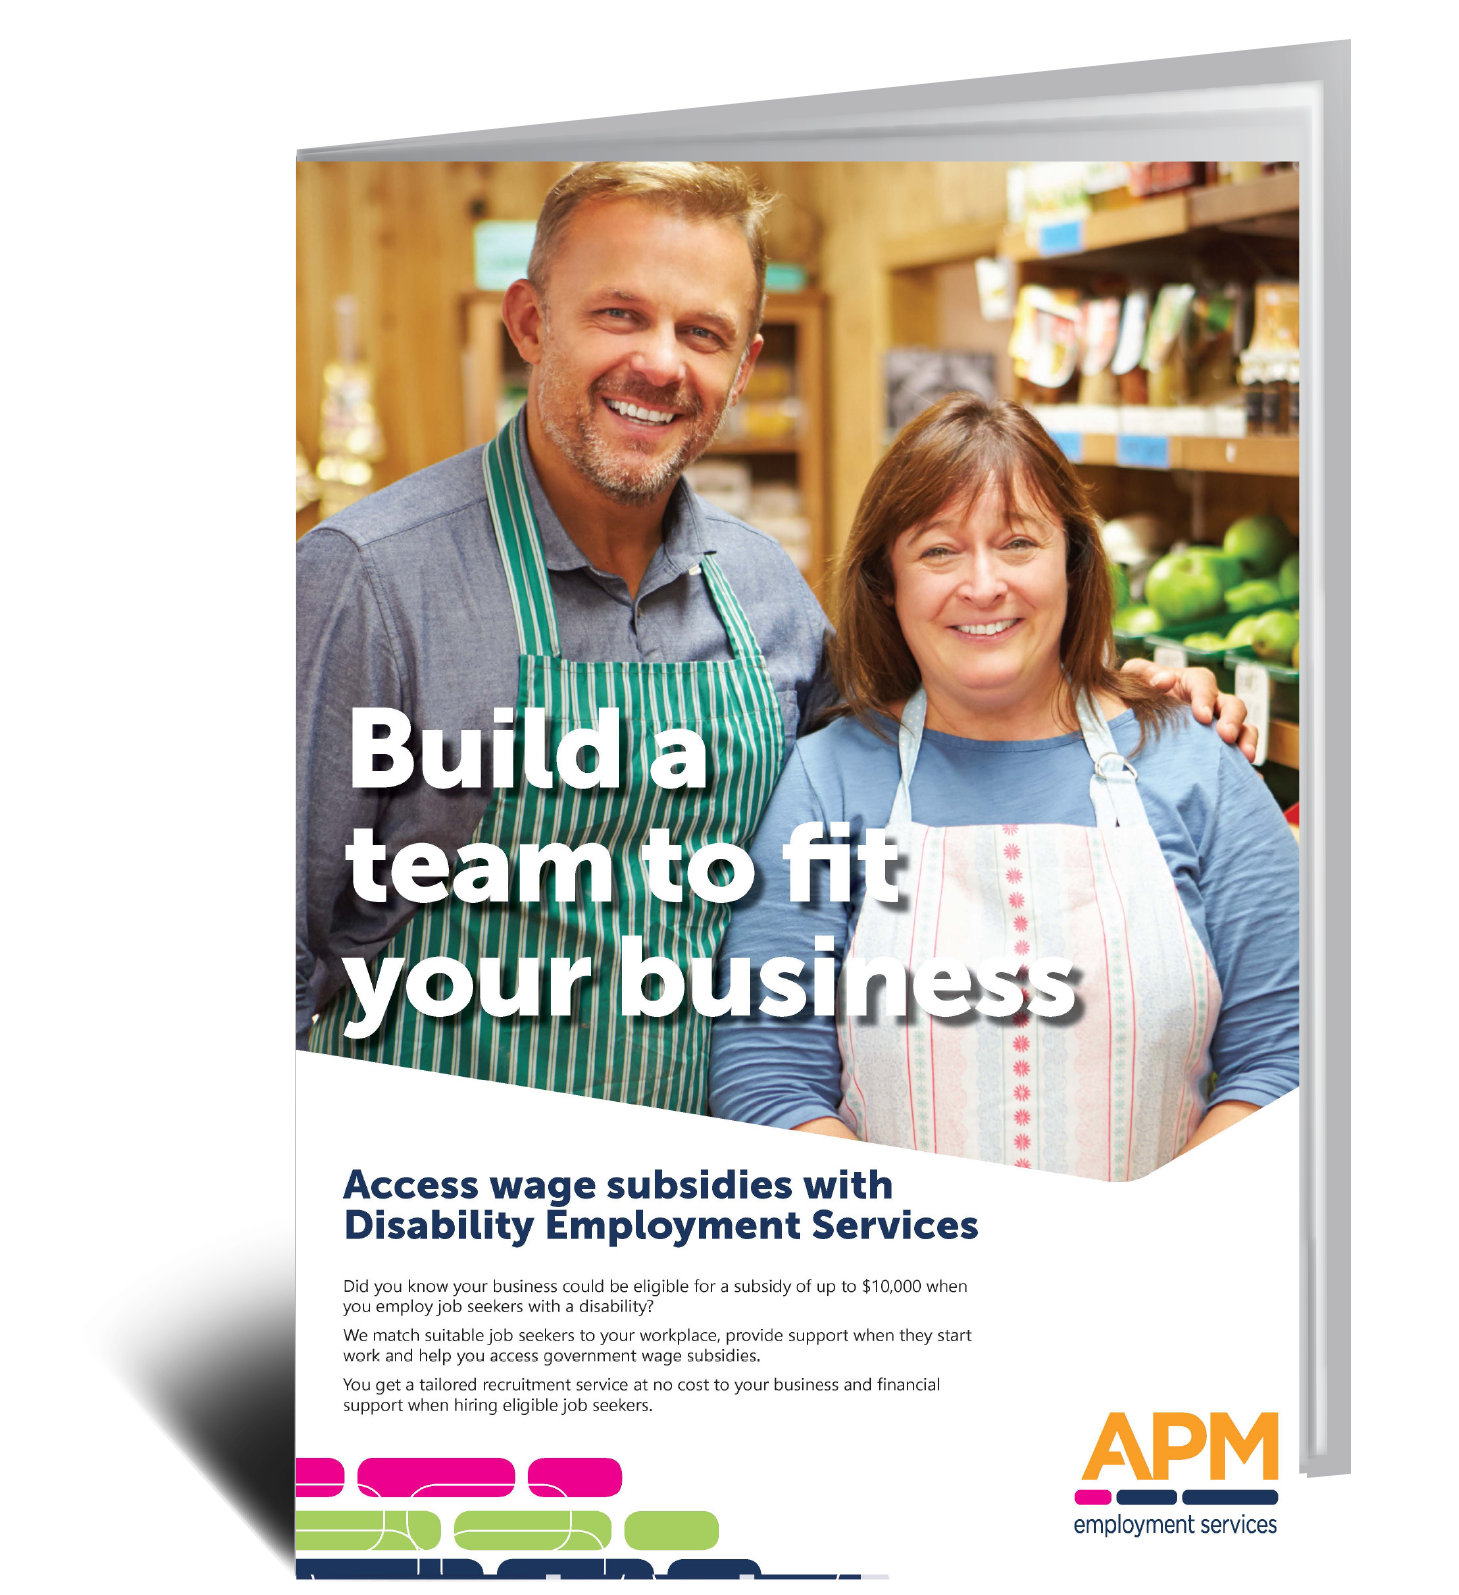 Want to know more? Download your guides to Disability Employment Services wage subsidies when hiring your next employee with APM image